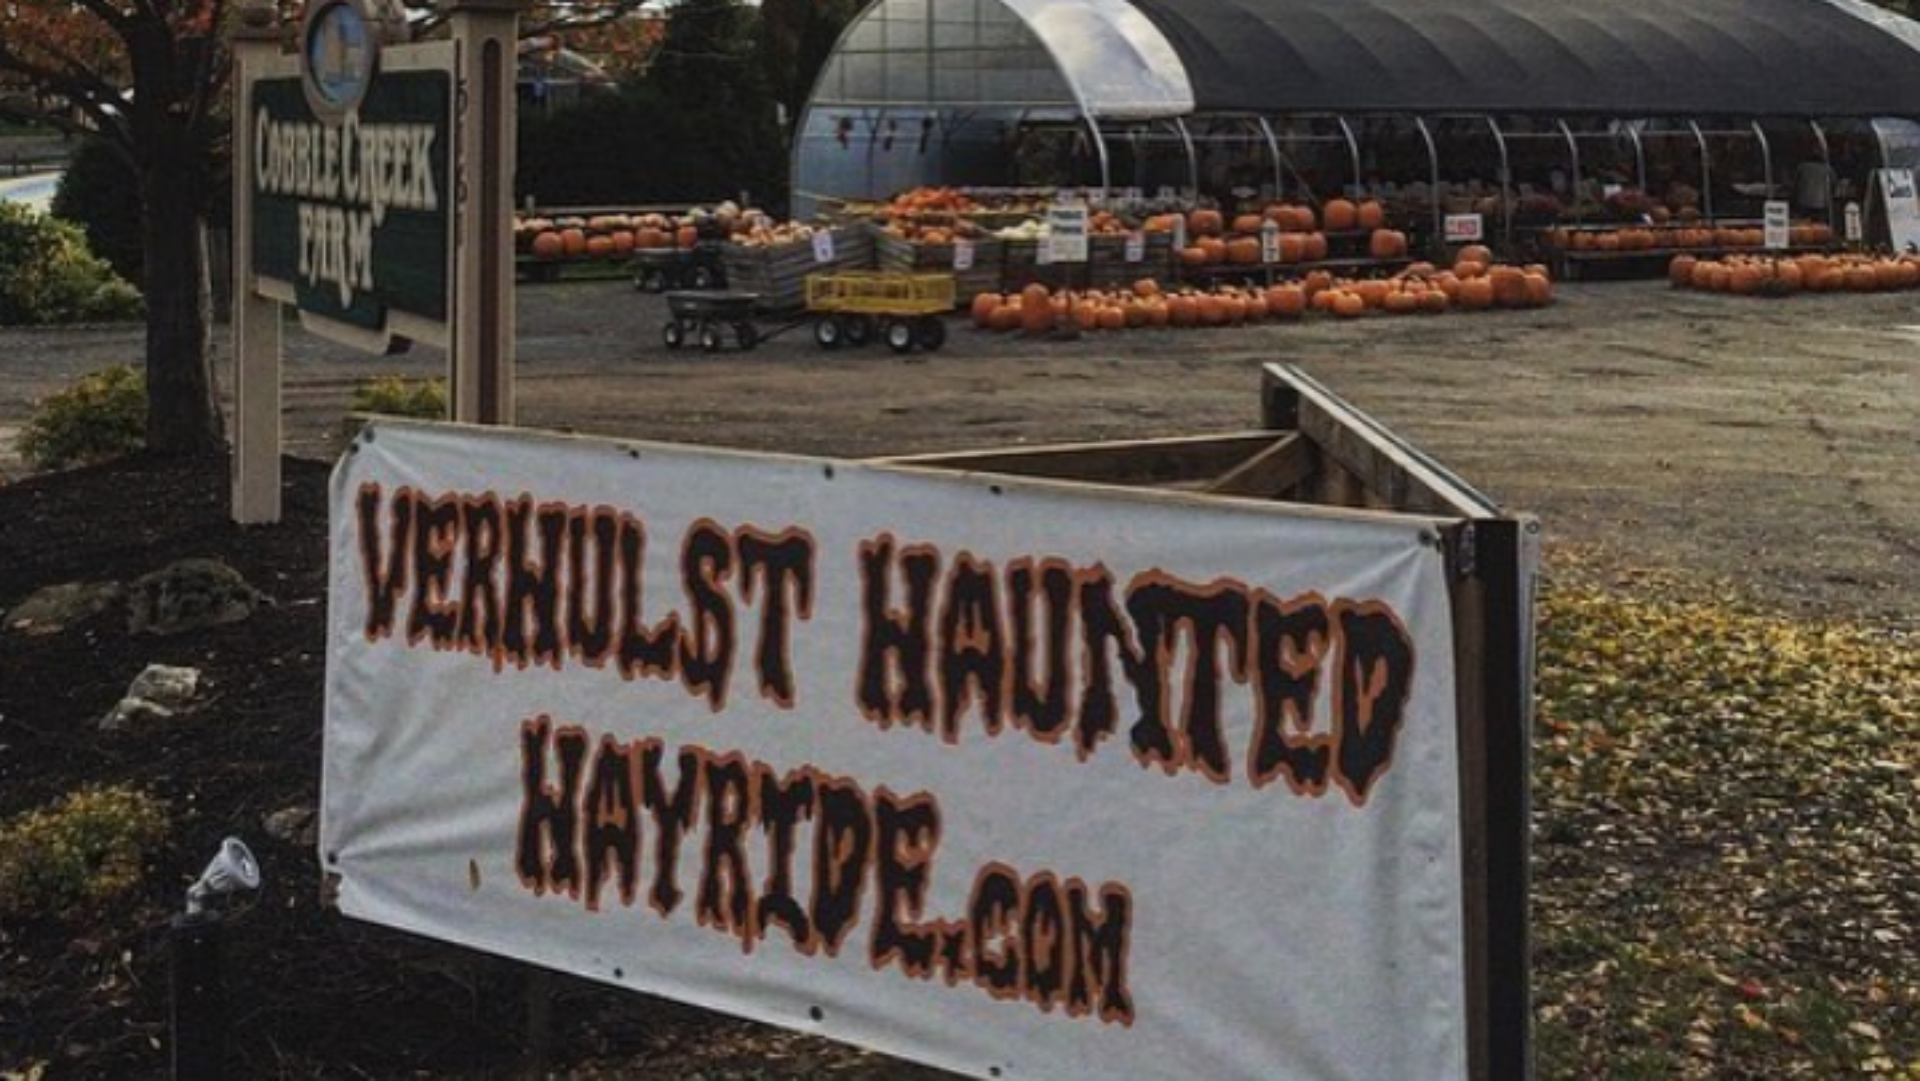 Rochester NY Haunted Halloween Hayride